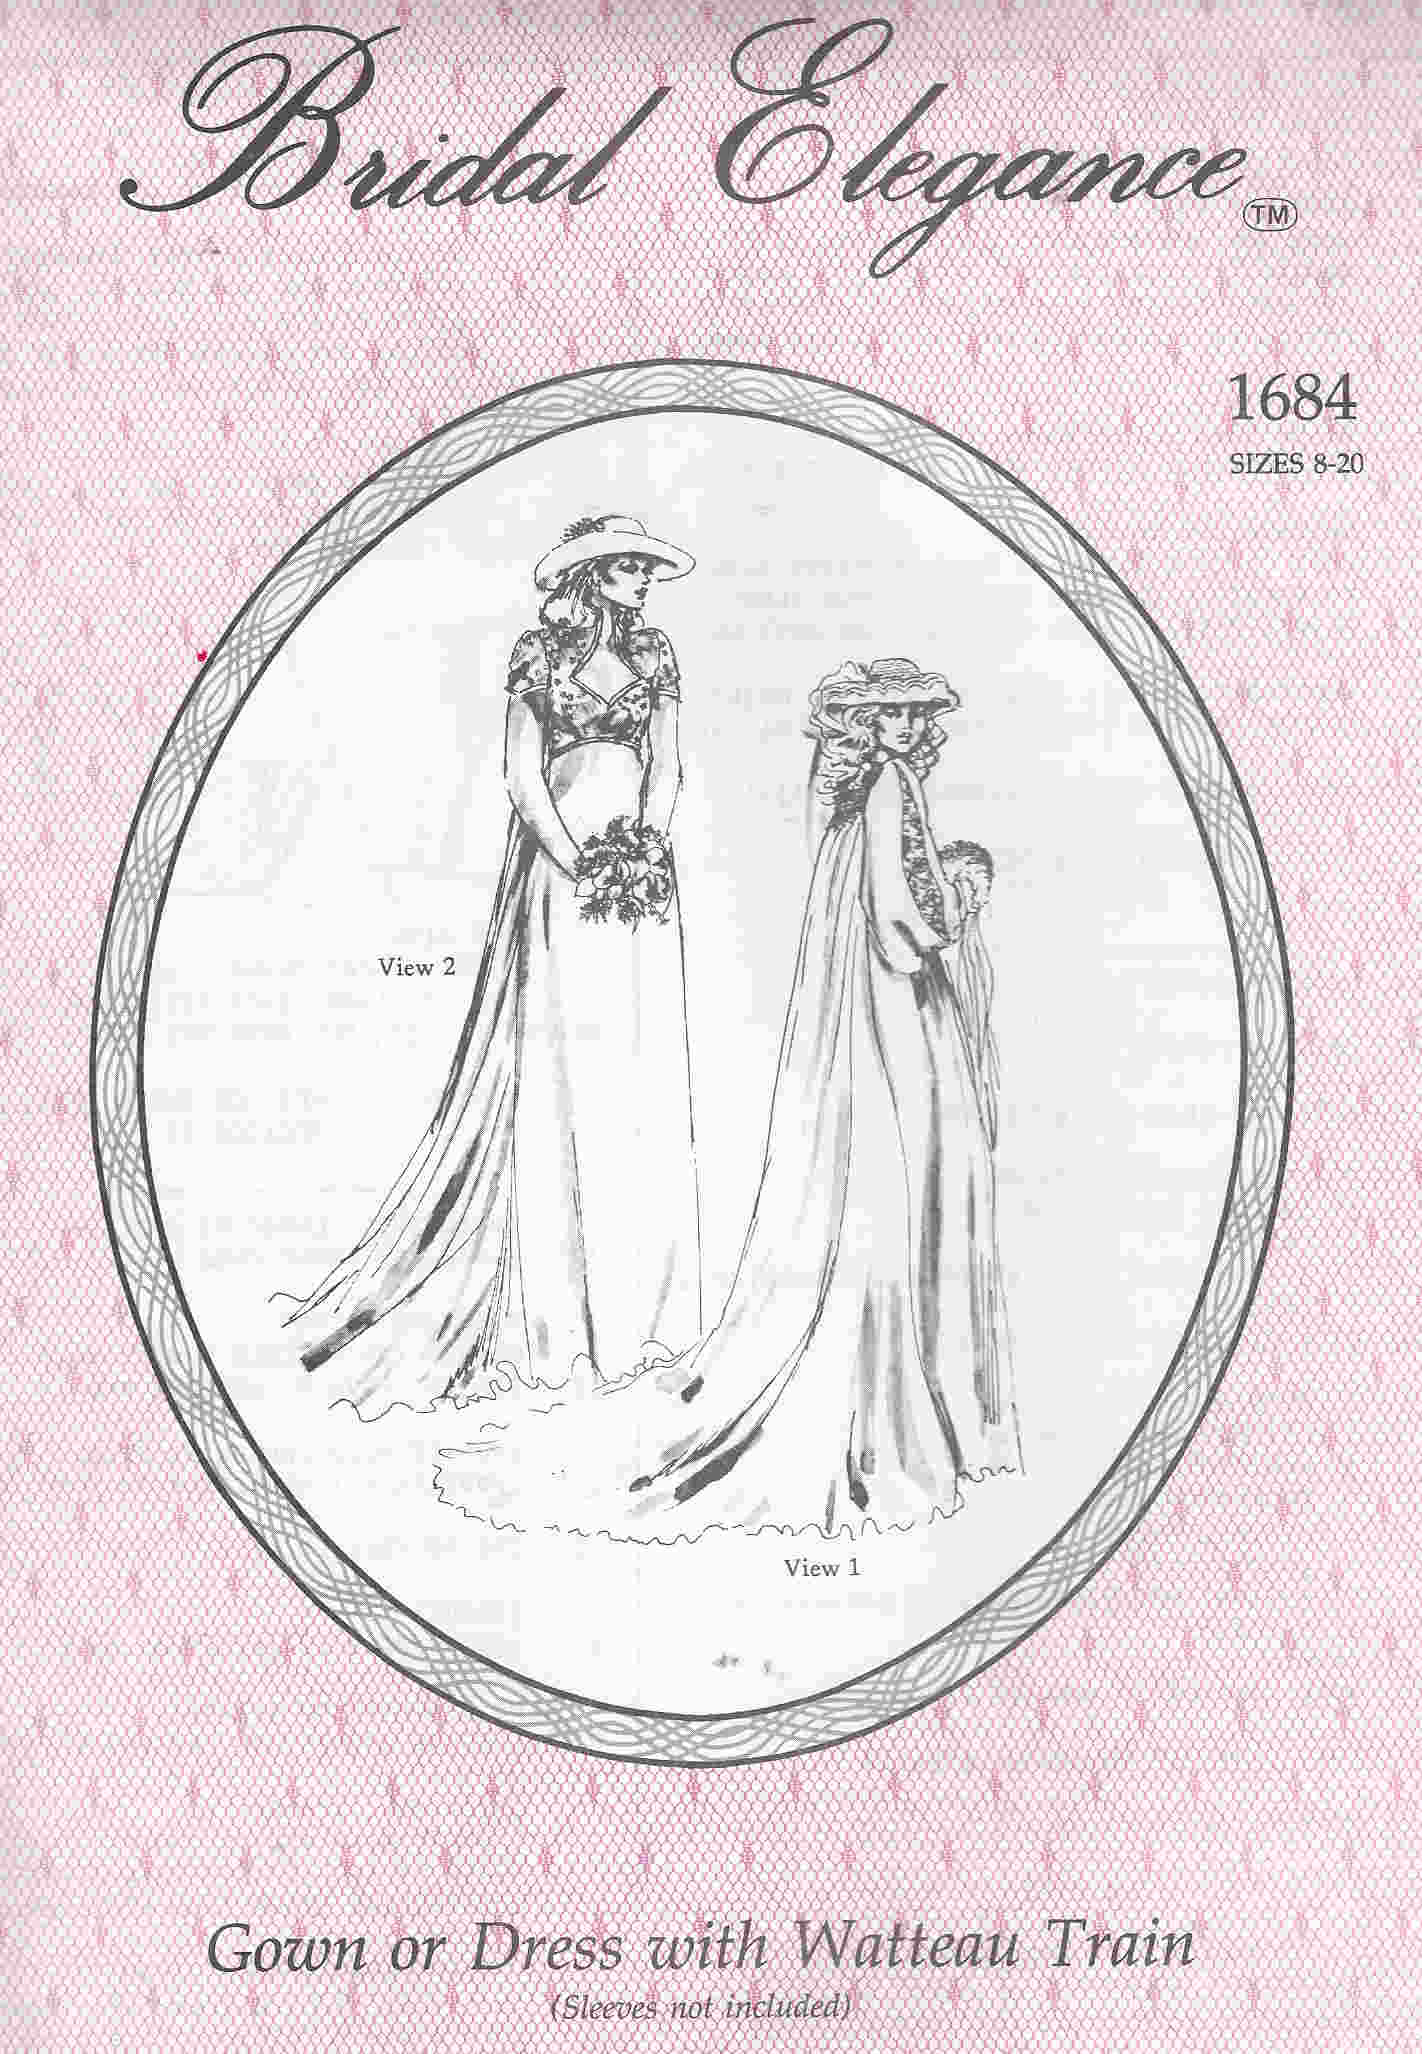 Bridal Elegance sewing pattern